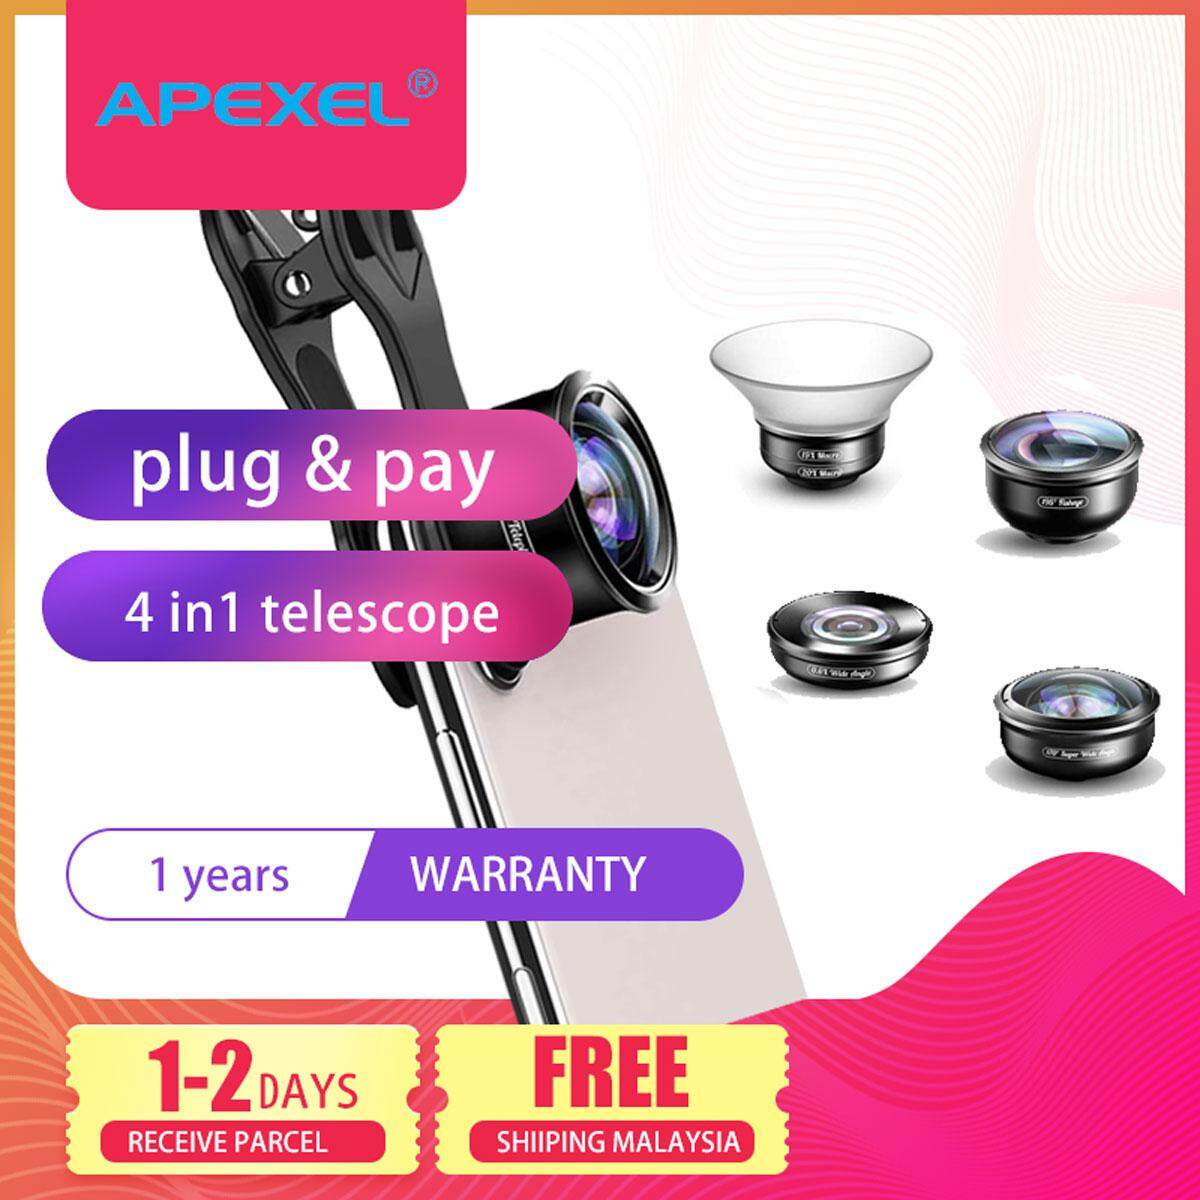 Apexel 5 in 1 mobile Phone Camera Lens Kit Professional HD Fisheye Super Wide Angle Macro Lens APL-HD5 for Apple Iphone Huawei Samsung S10 Xiaomi Oppo Vivo